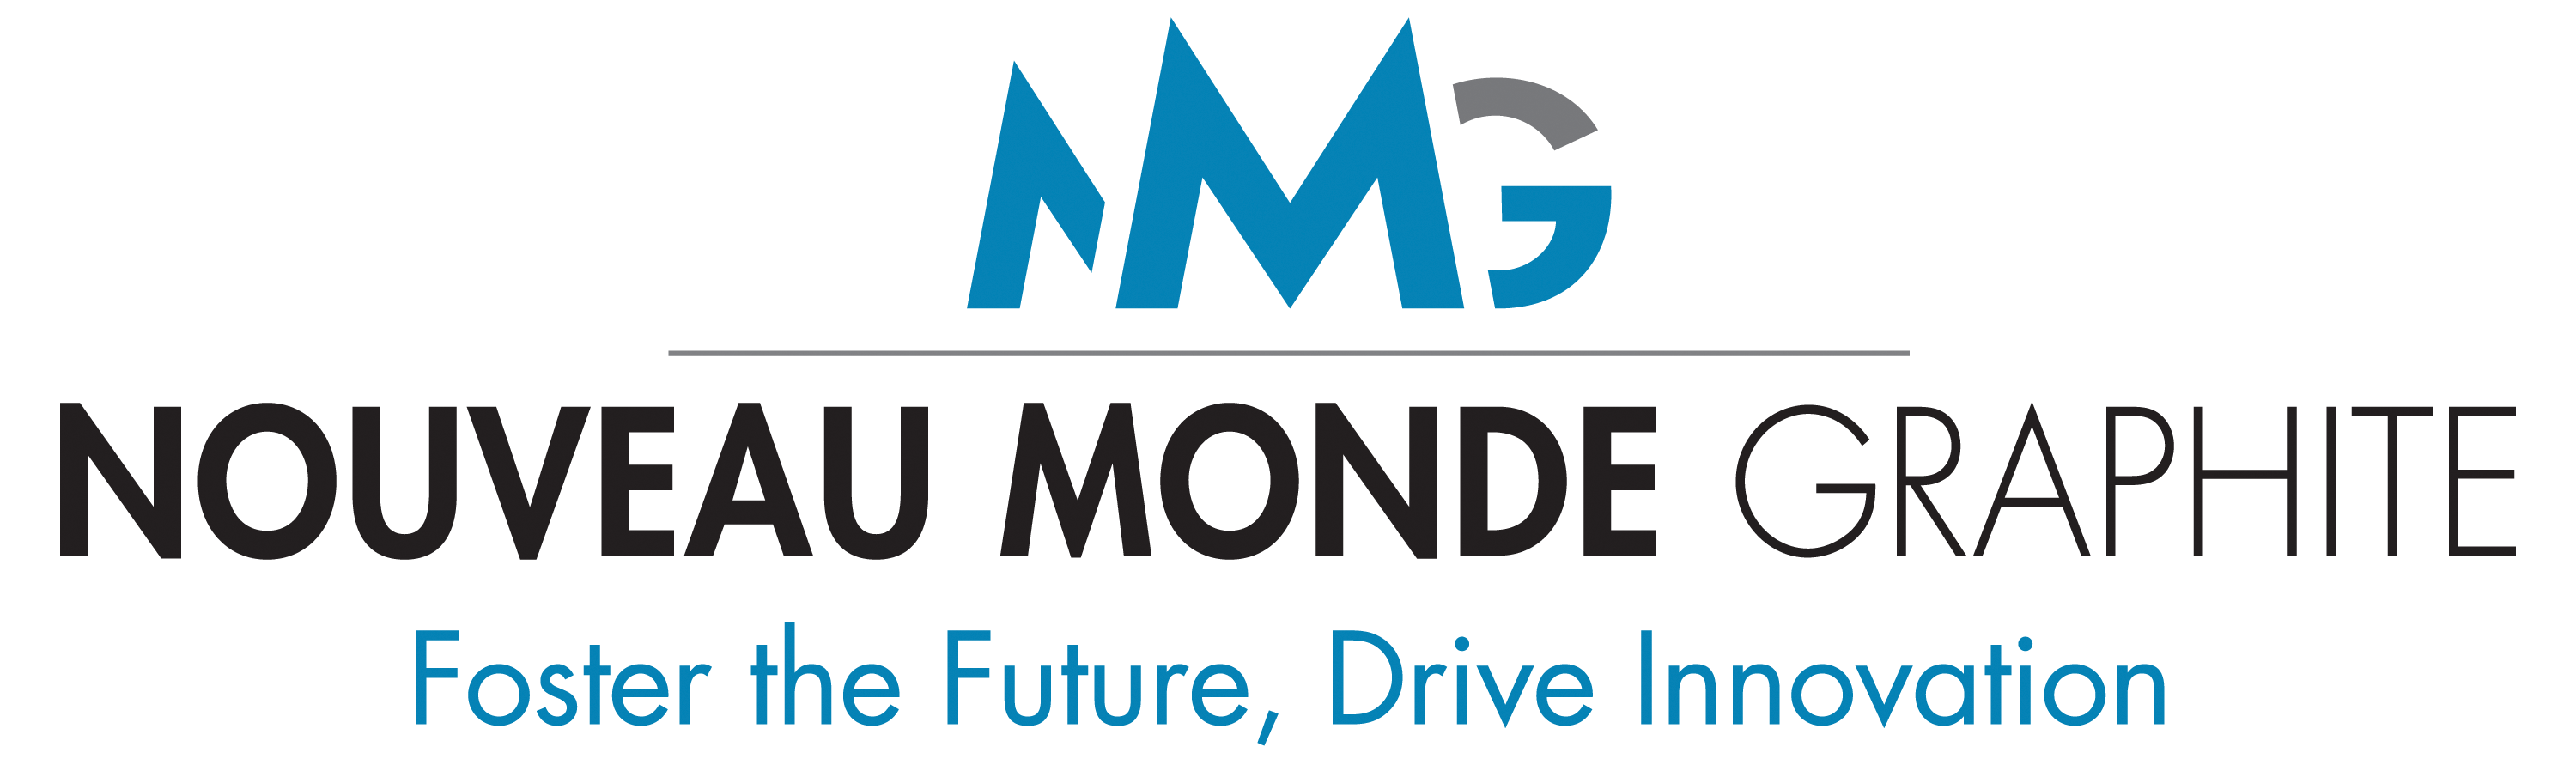 Nouveau Monde Announces Significant Milestone to Commercialise its Value-added and Sustainable Battery-grade Anode Graphite Material